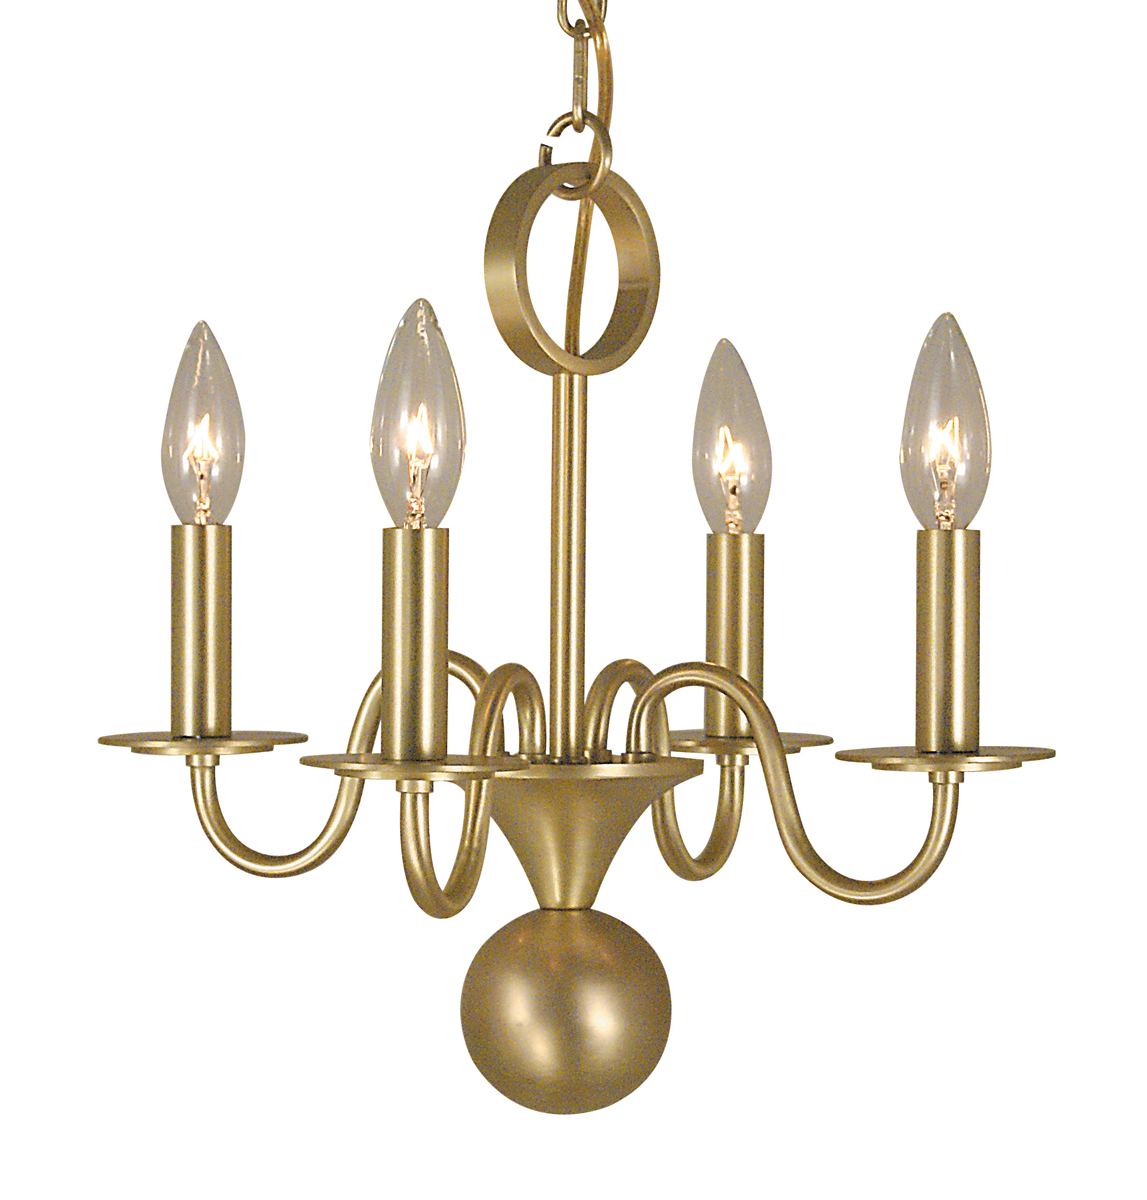 Mini Chandelier String Lights : Framburg Lighting (2244) 4-Light Jamestown Mini Chandelier